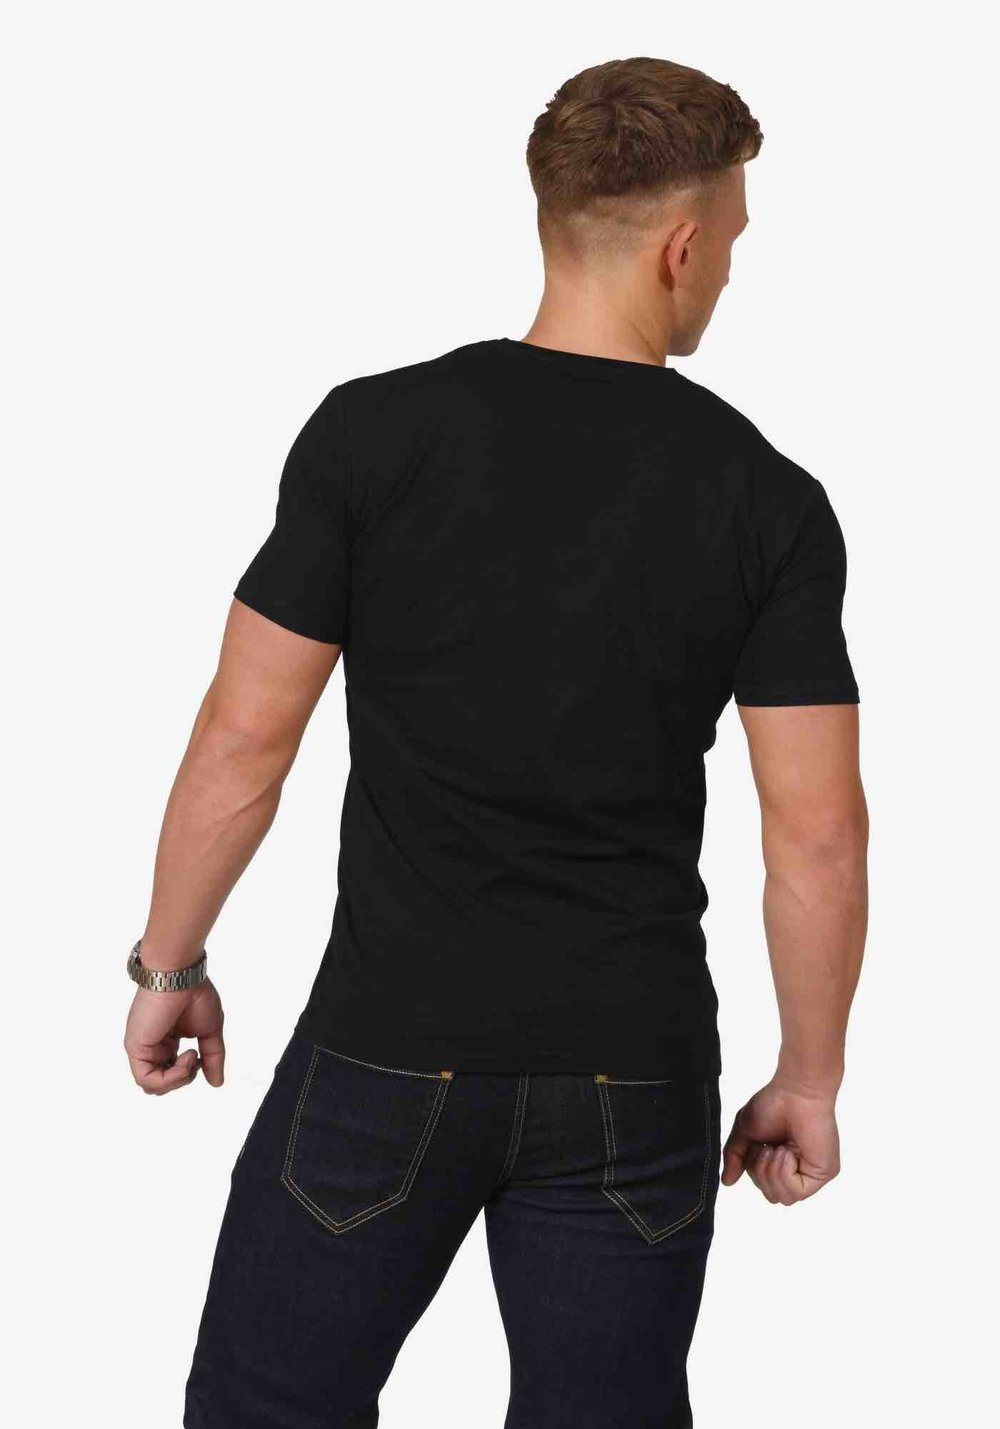 Tees_Store_Image_Black_Back.jpg